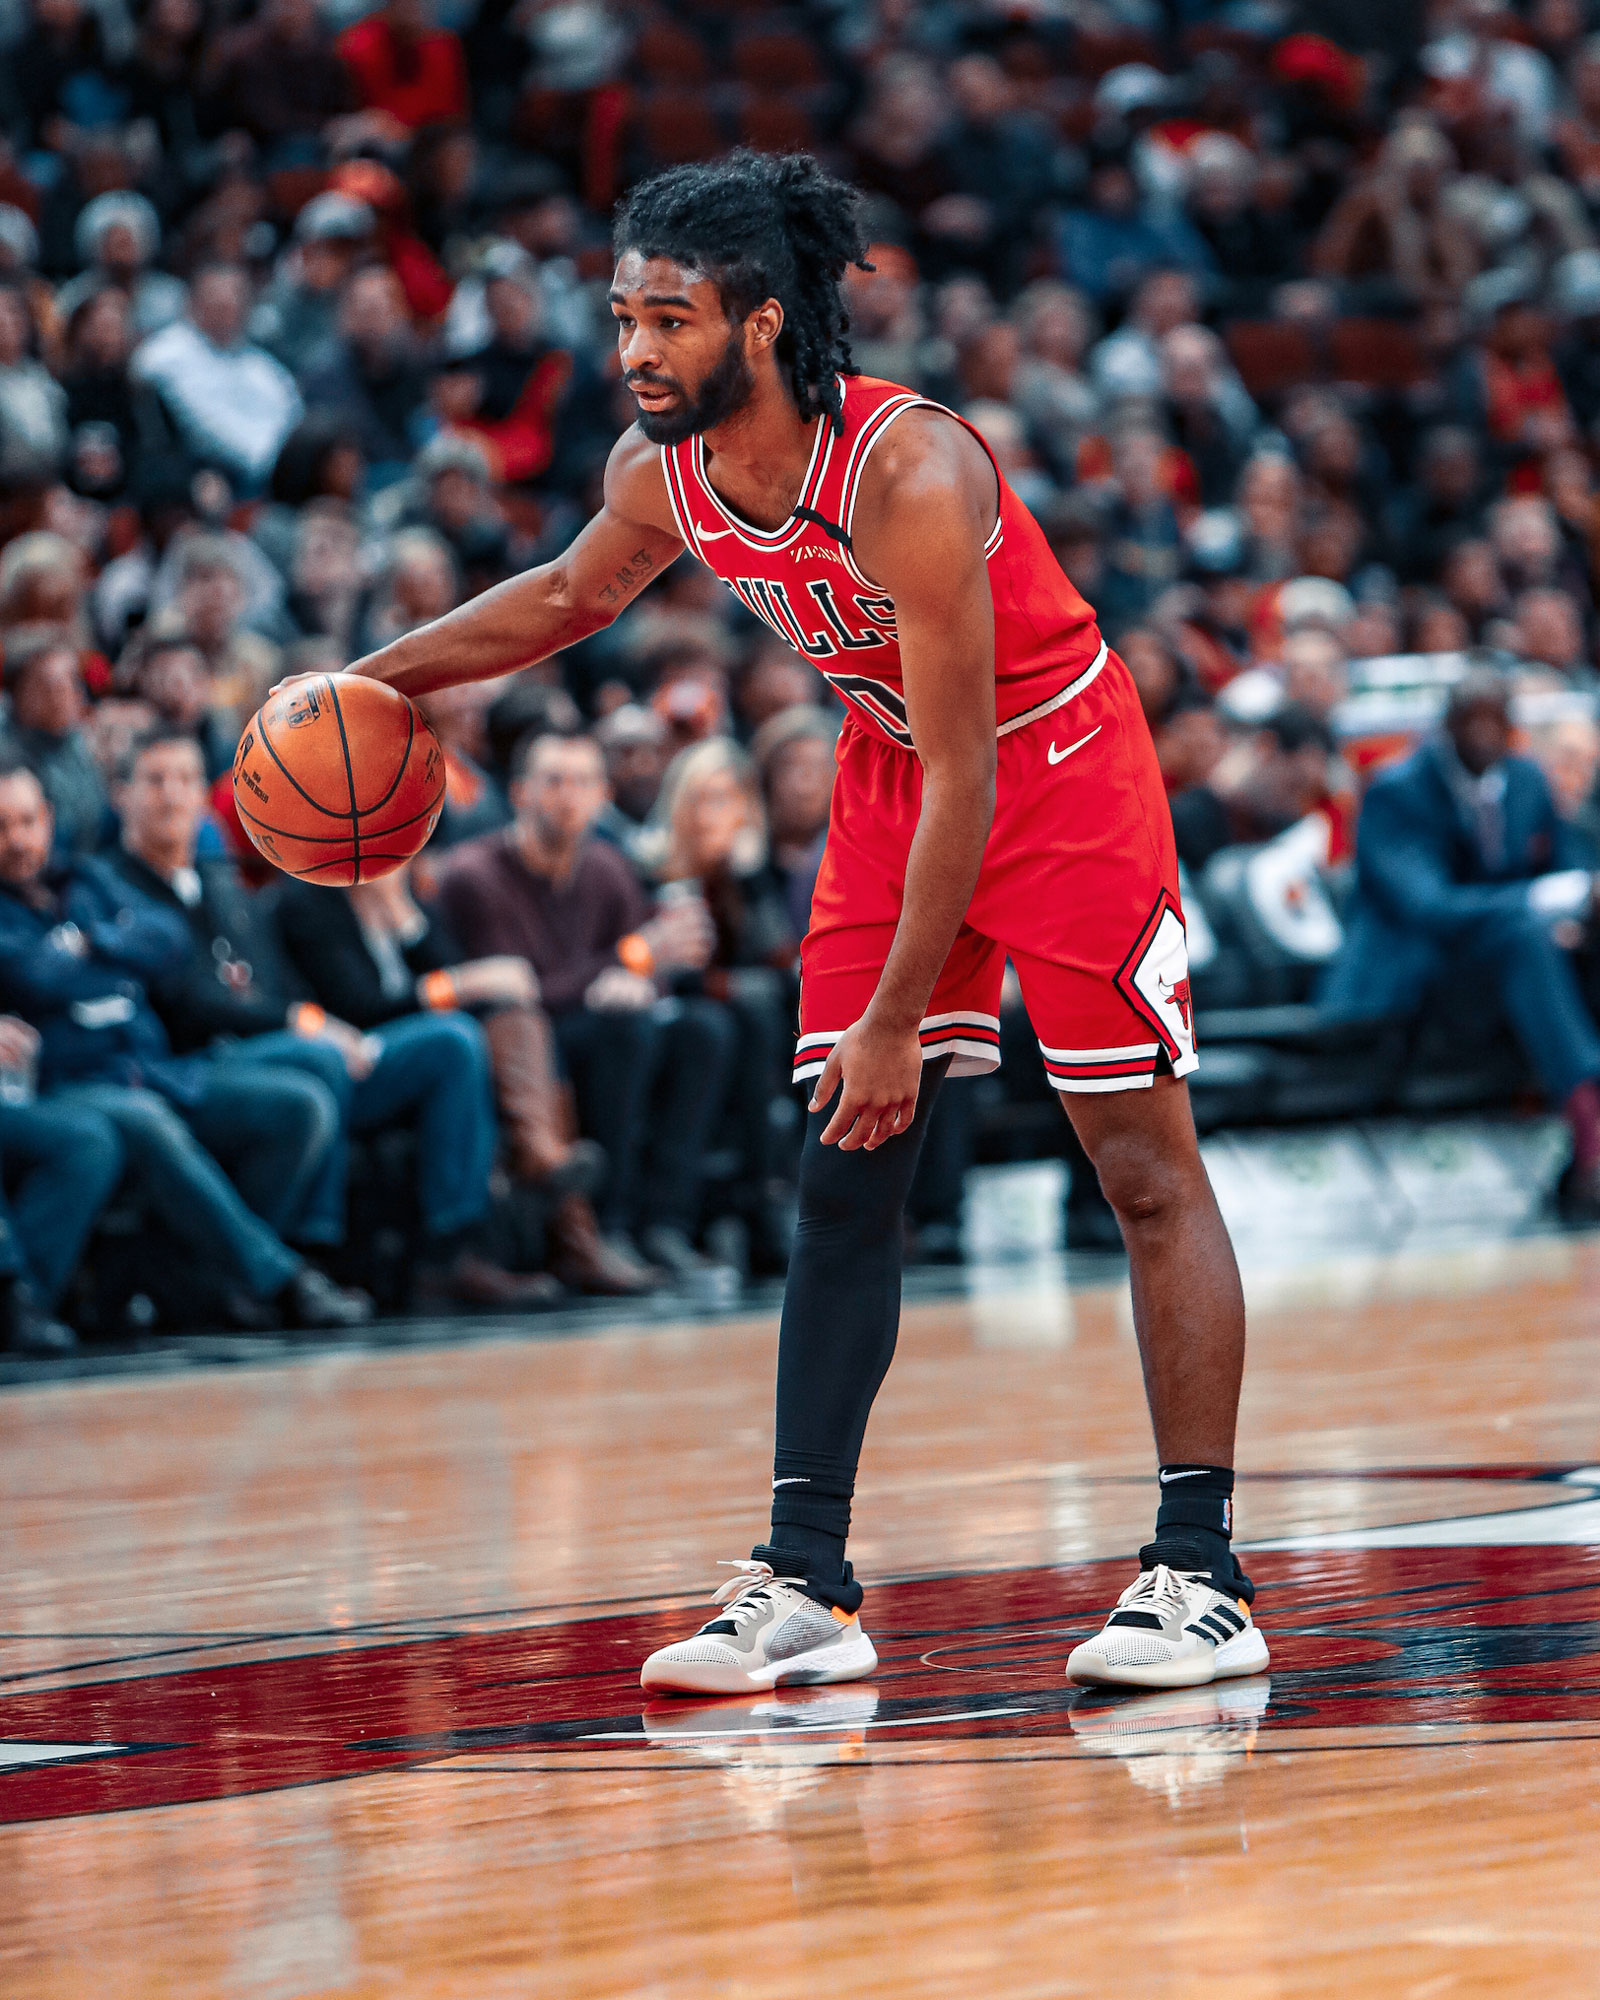 Coby White is averaging 11.1 points per game so far in his rookie campaign.